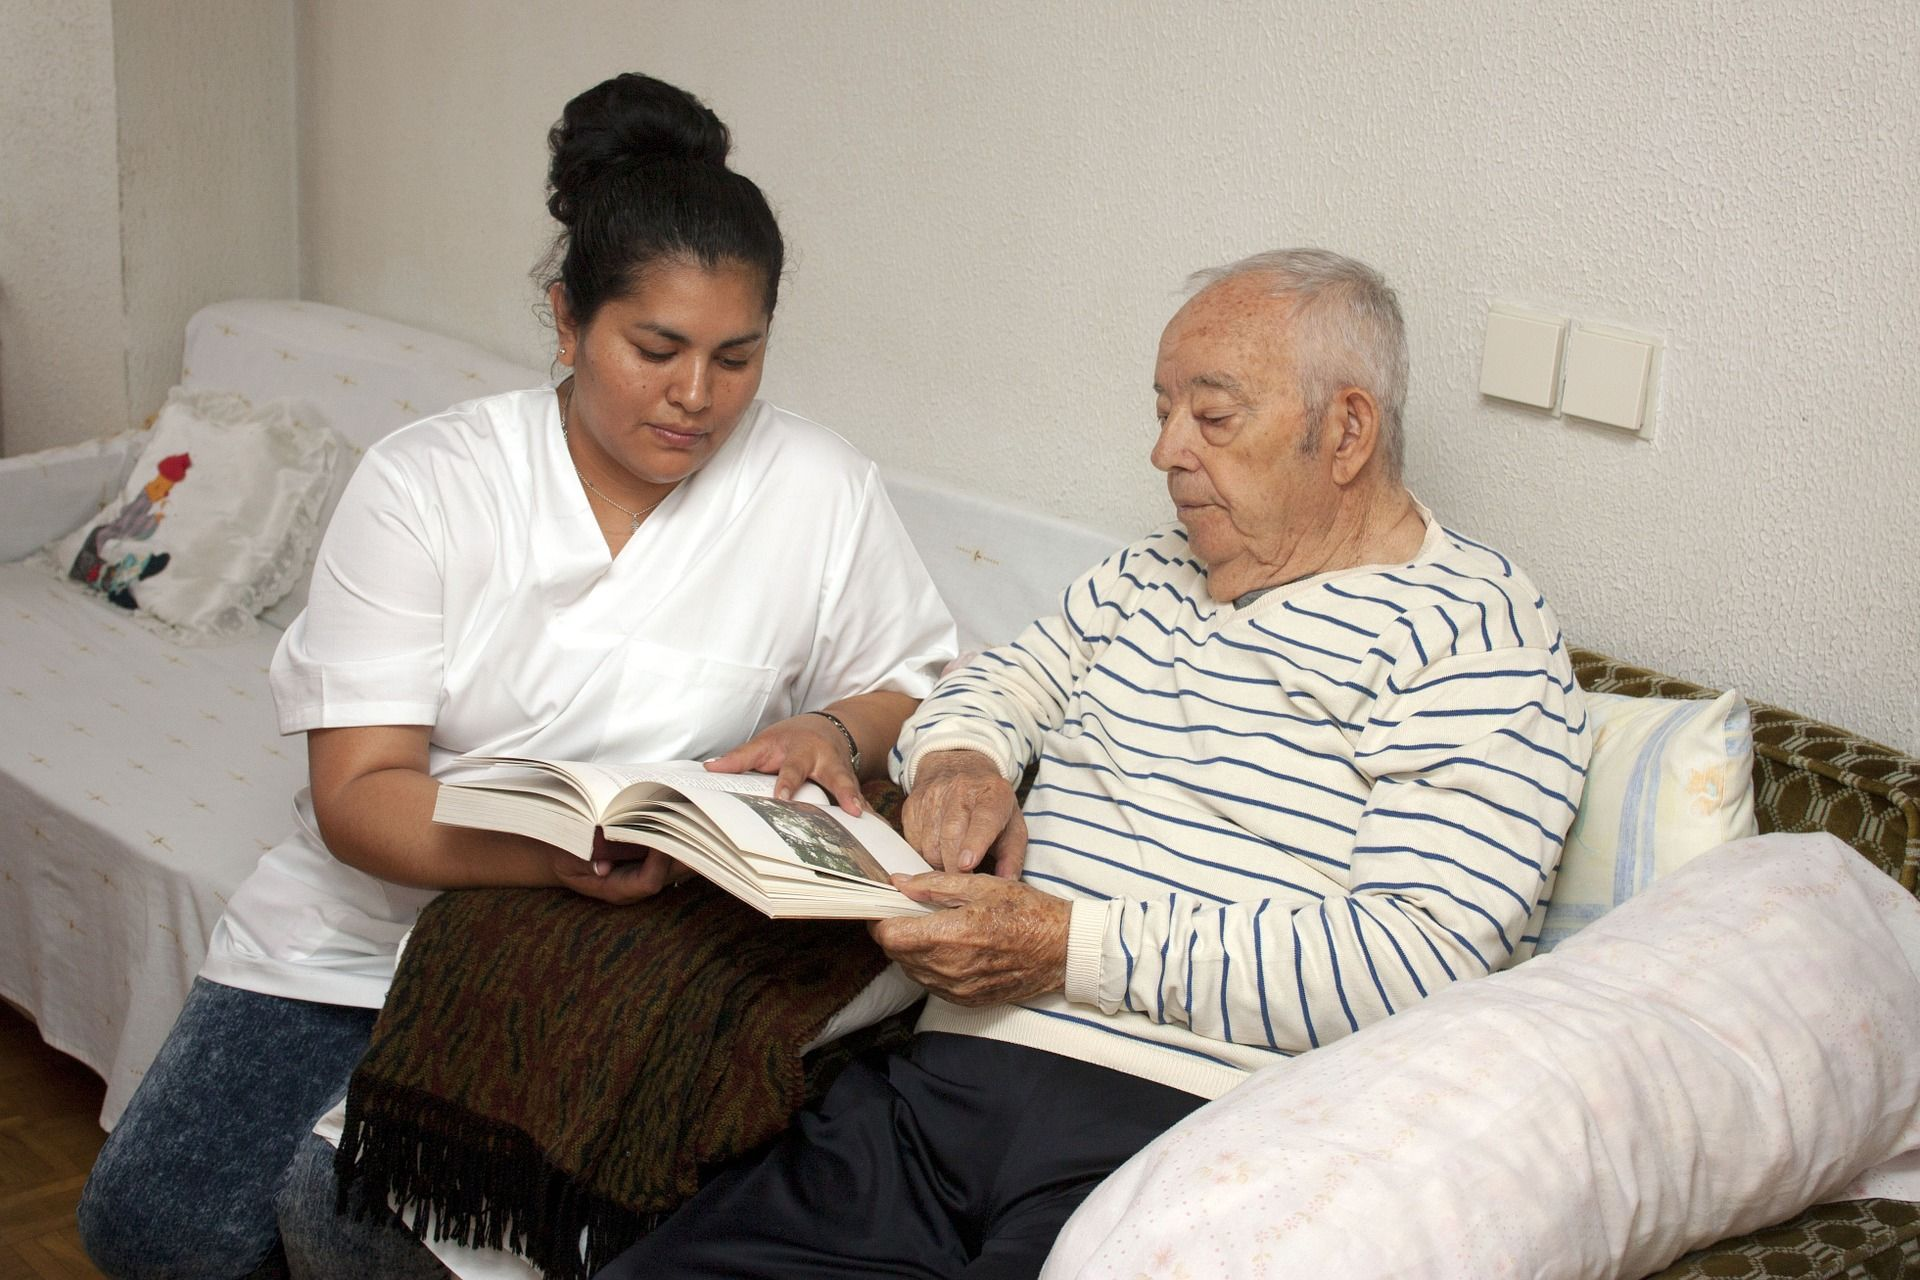 FINDING A GOOD PERSONAL CARE WORKER (Part 1) - Where can I find a Personal Care Assistant?